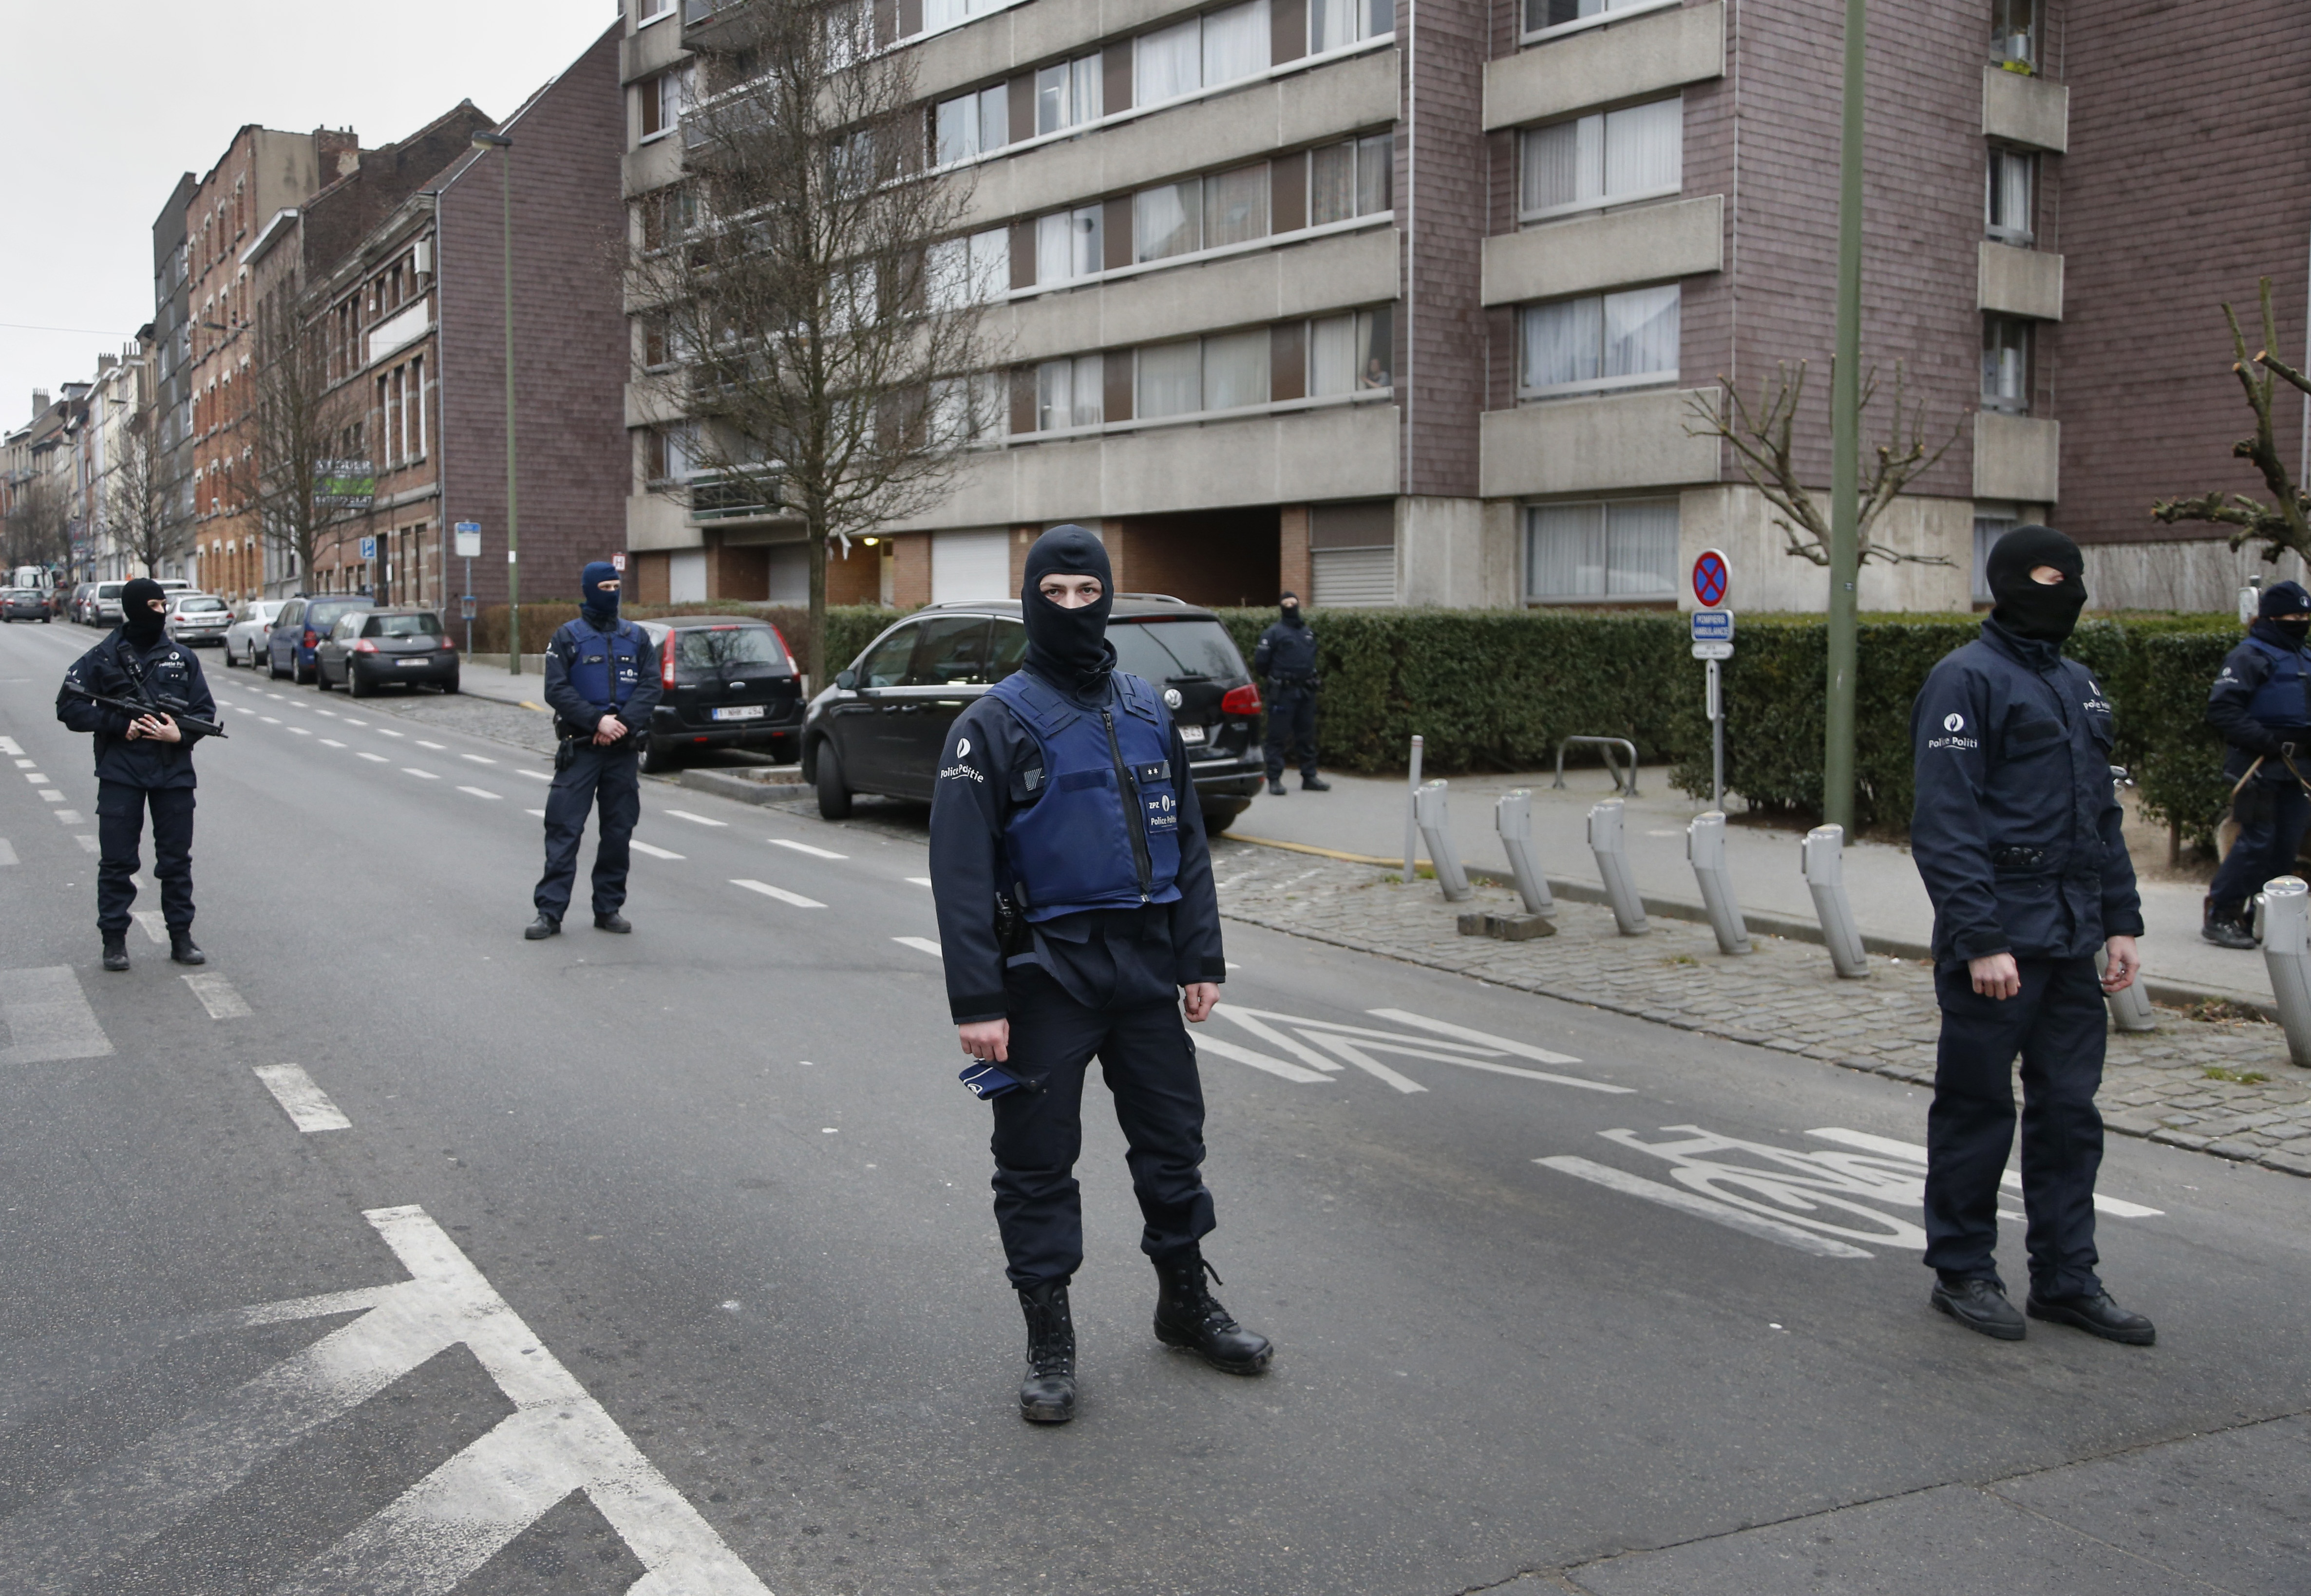 Police at the scene of a security operation in the Brussels suburb of Molenbeek in Brussels, Belgium, March 18, 2016.   REUTERS/Francois Lenoir - RTSB43K